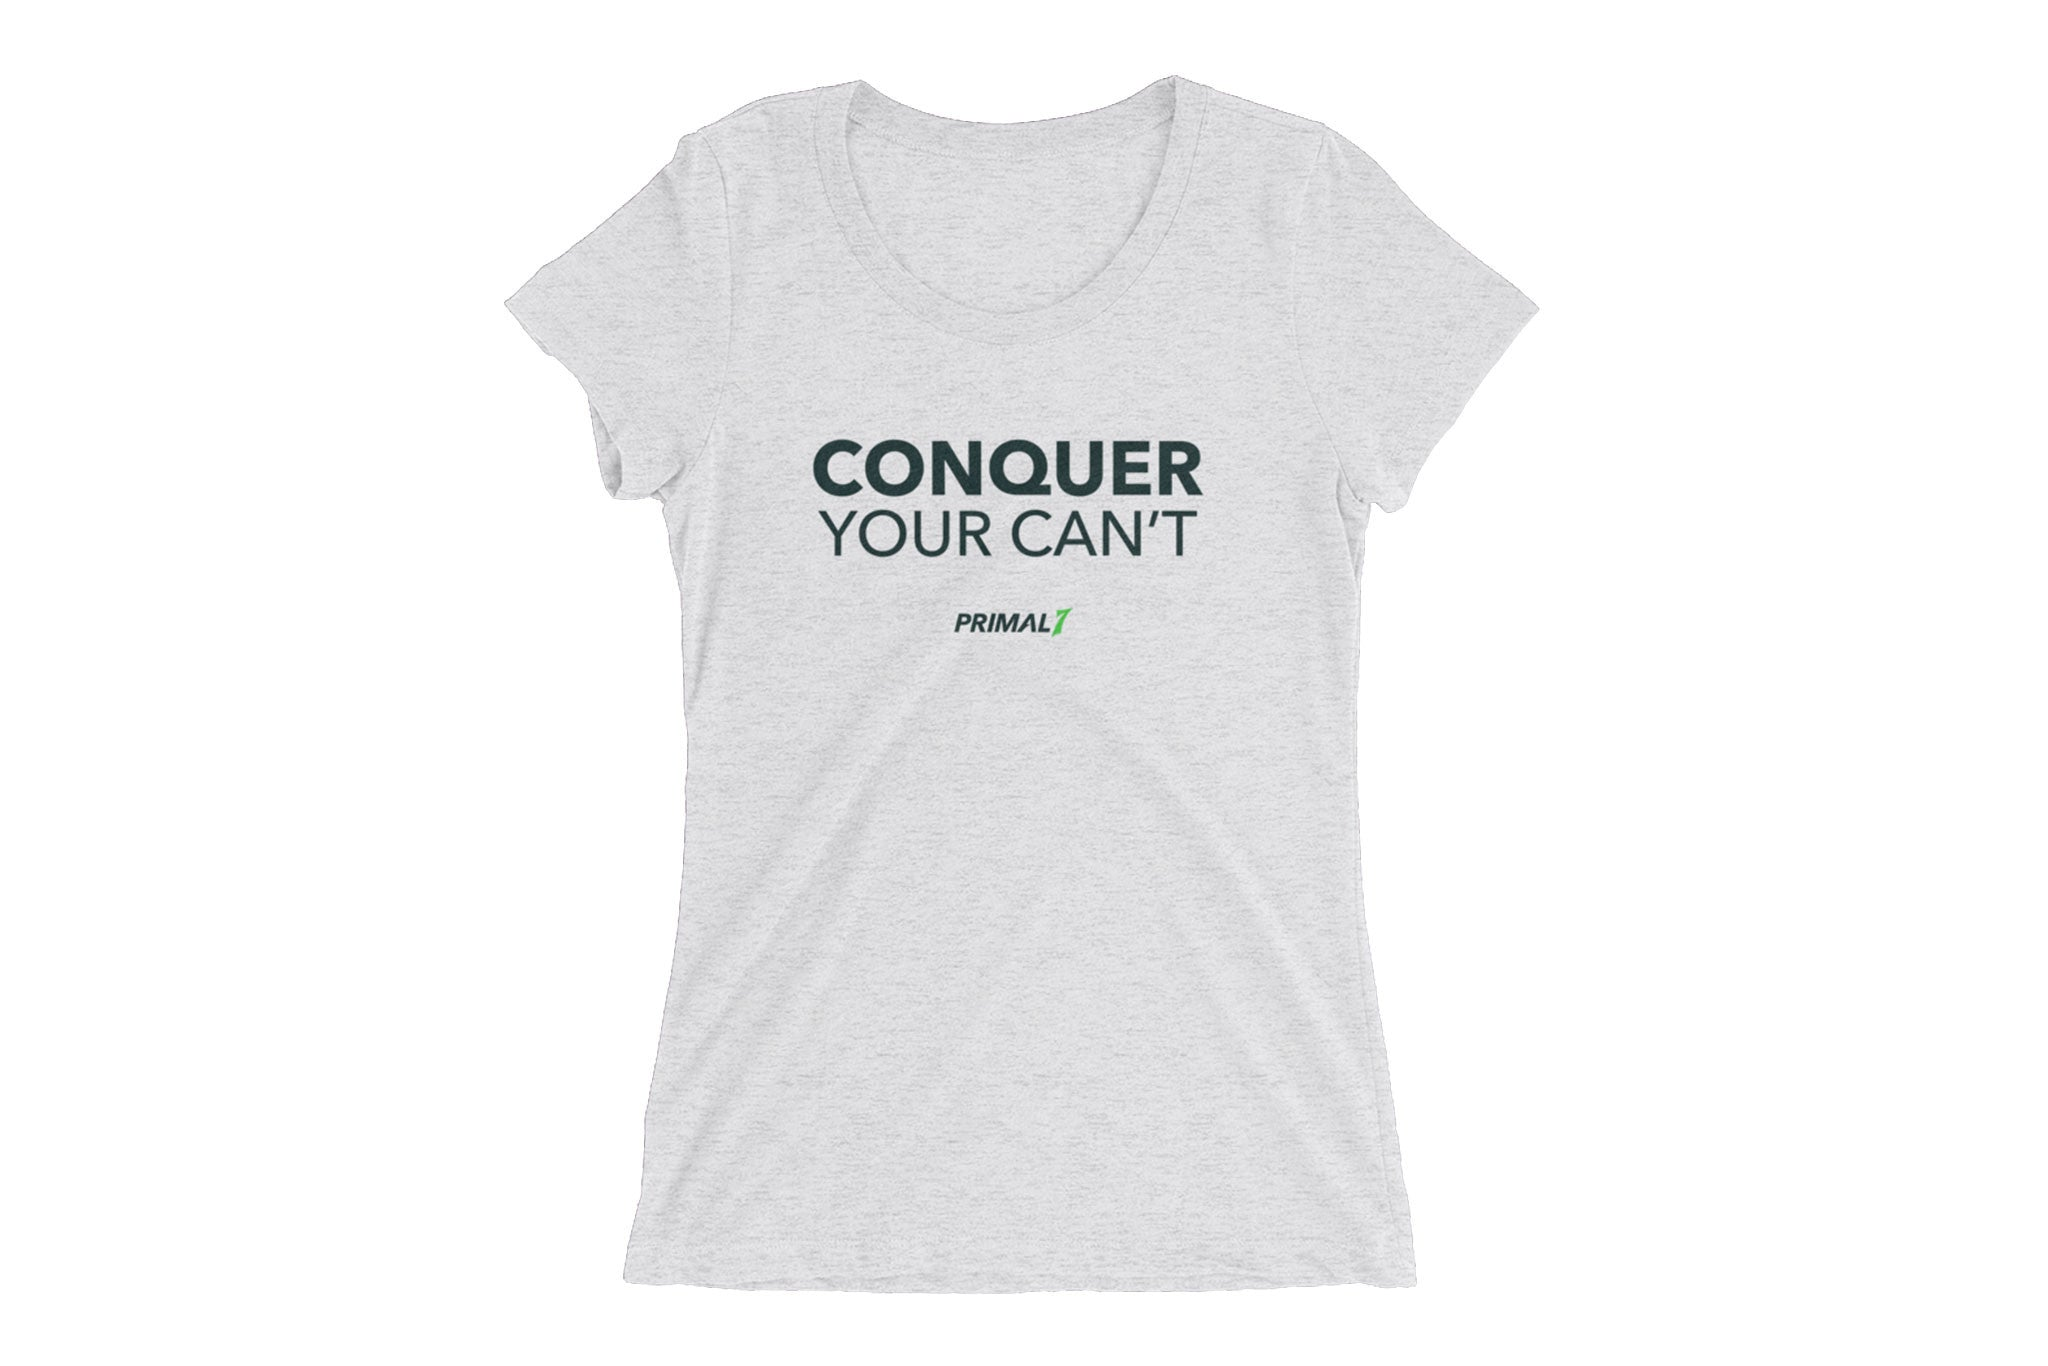 Women's CYC T-Shirt